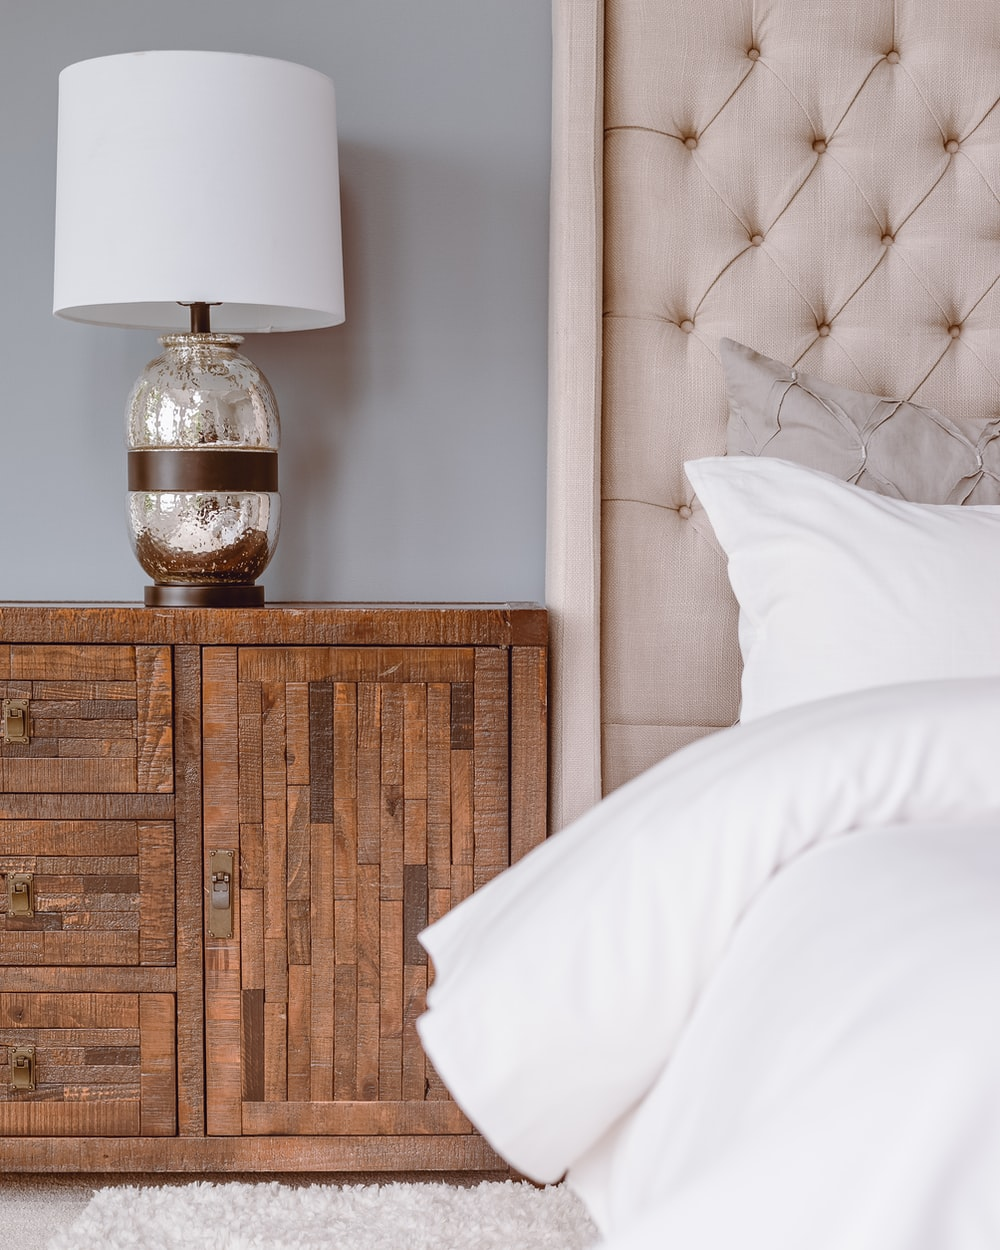 white table lamp on brown wooden drawer